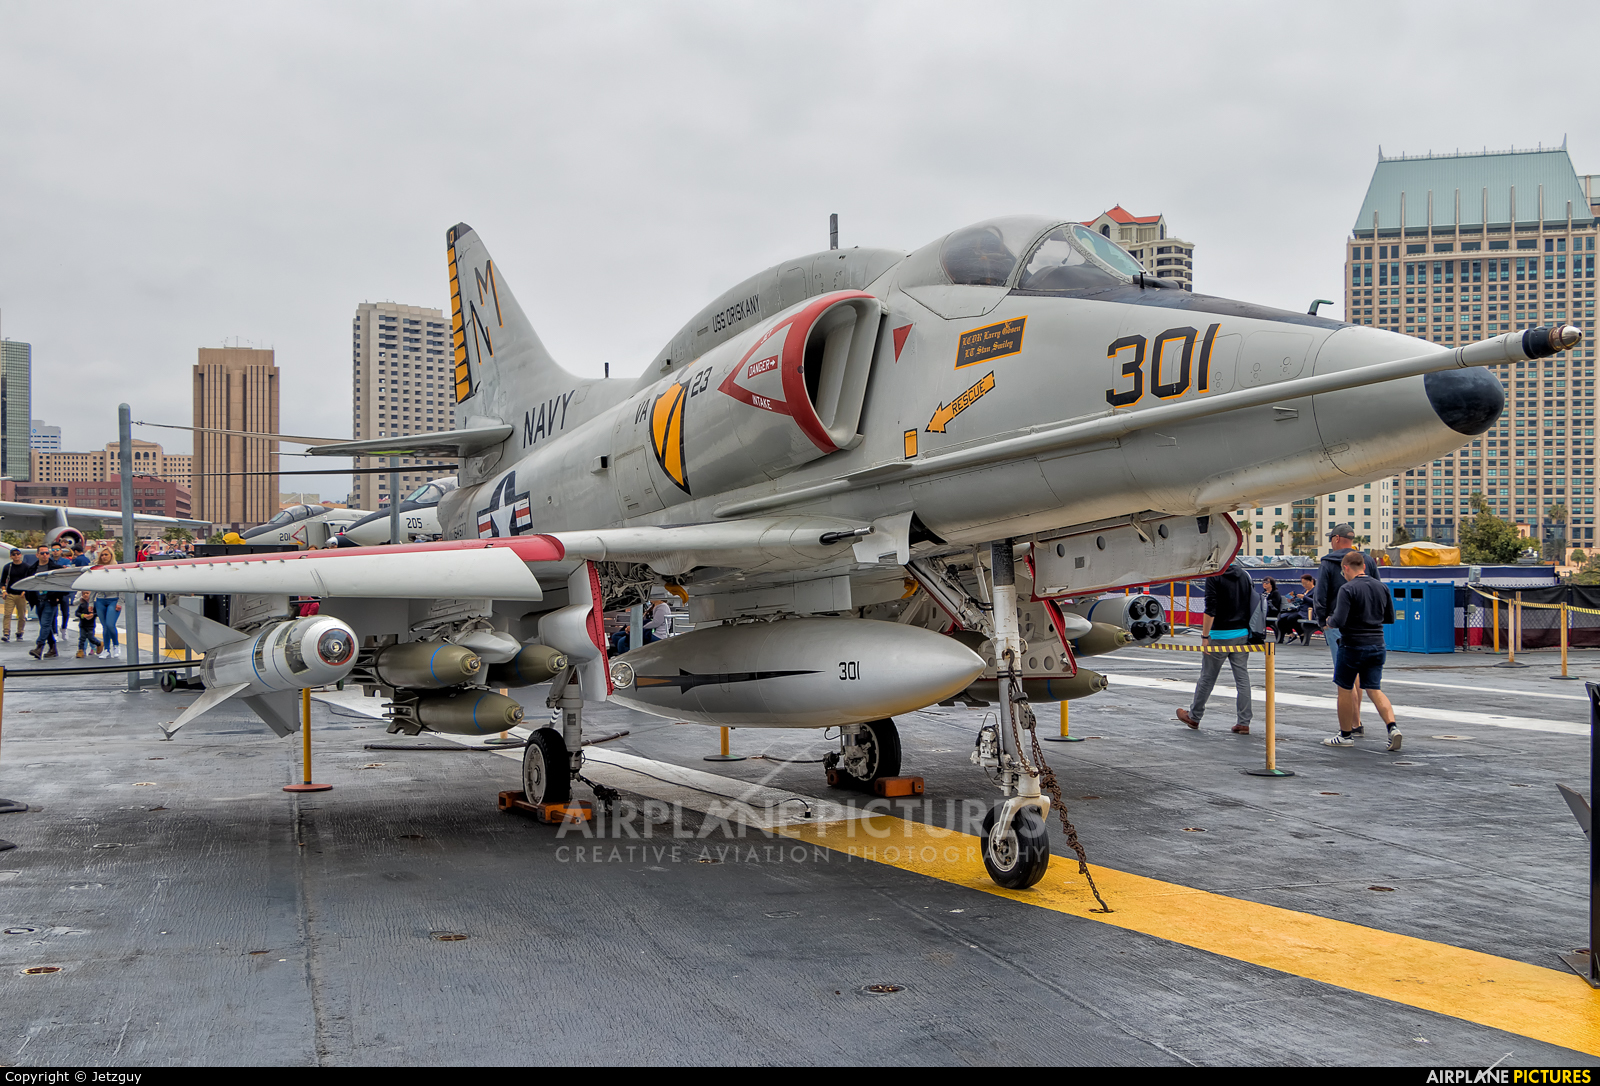 USA - Navy 154977 aircraft at San Diego - USS Midway Museum